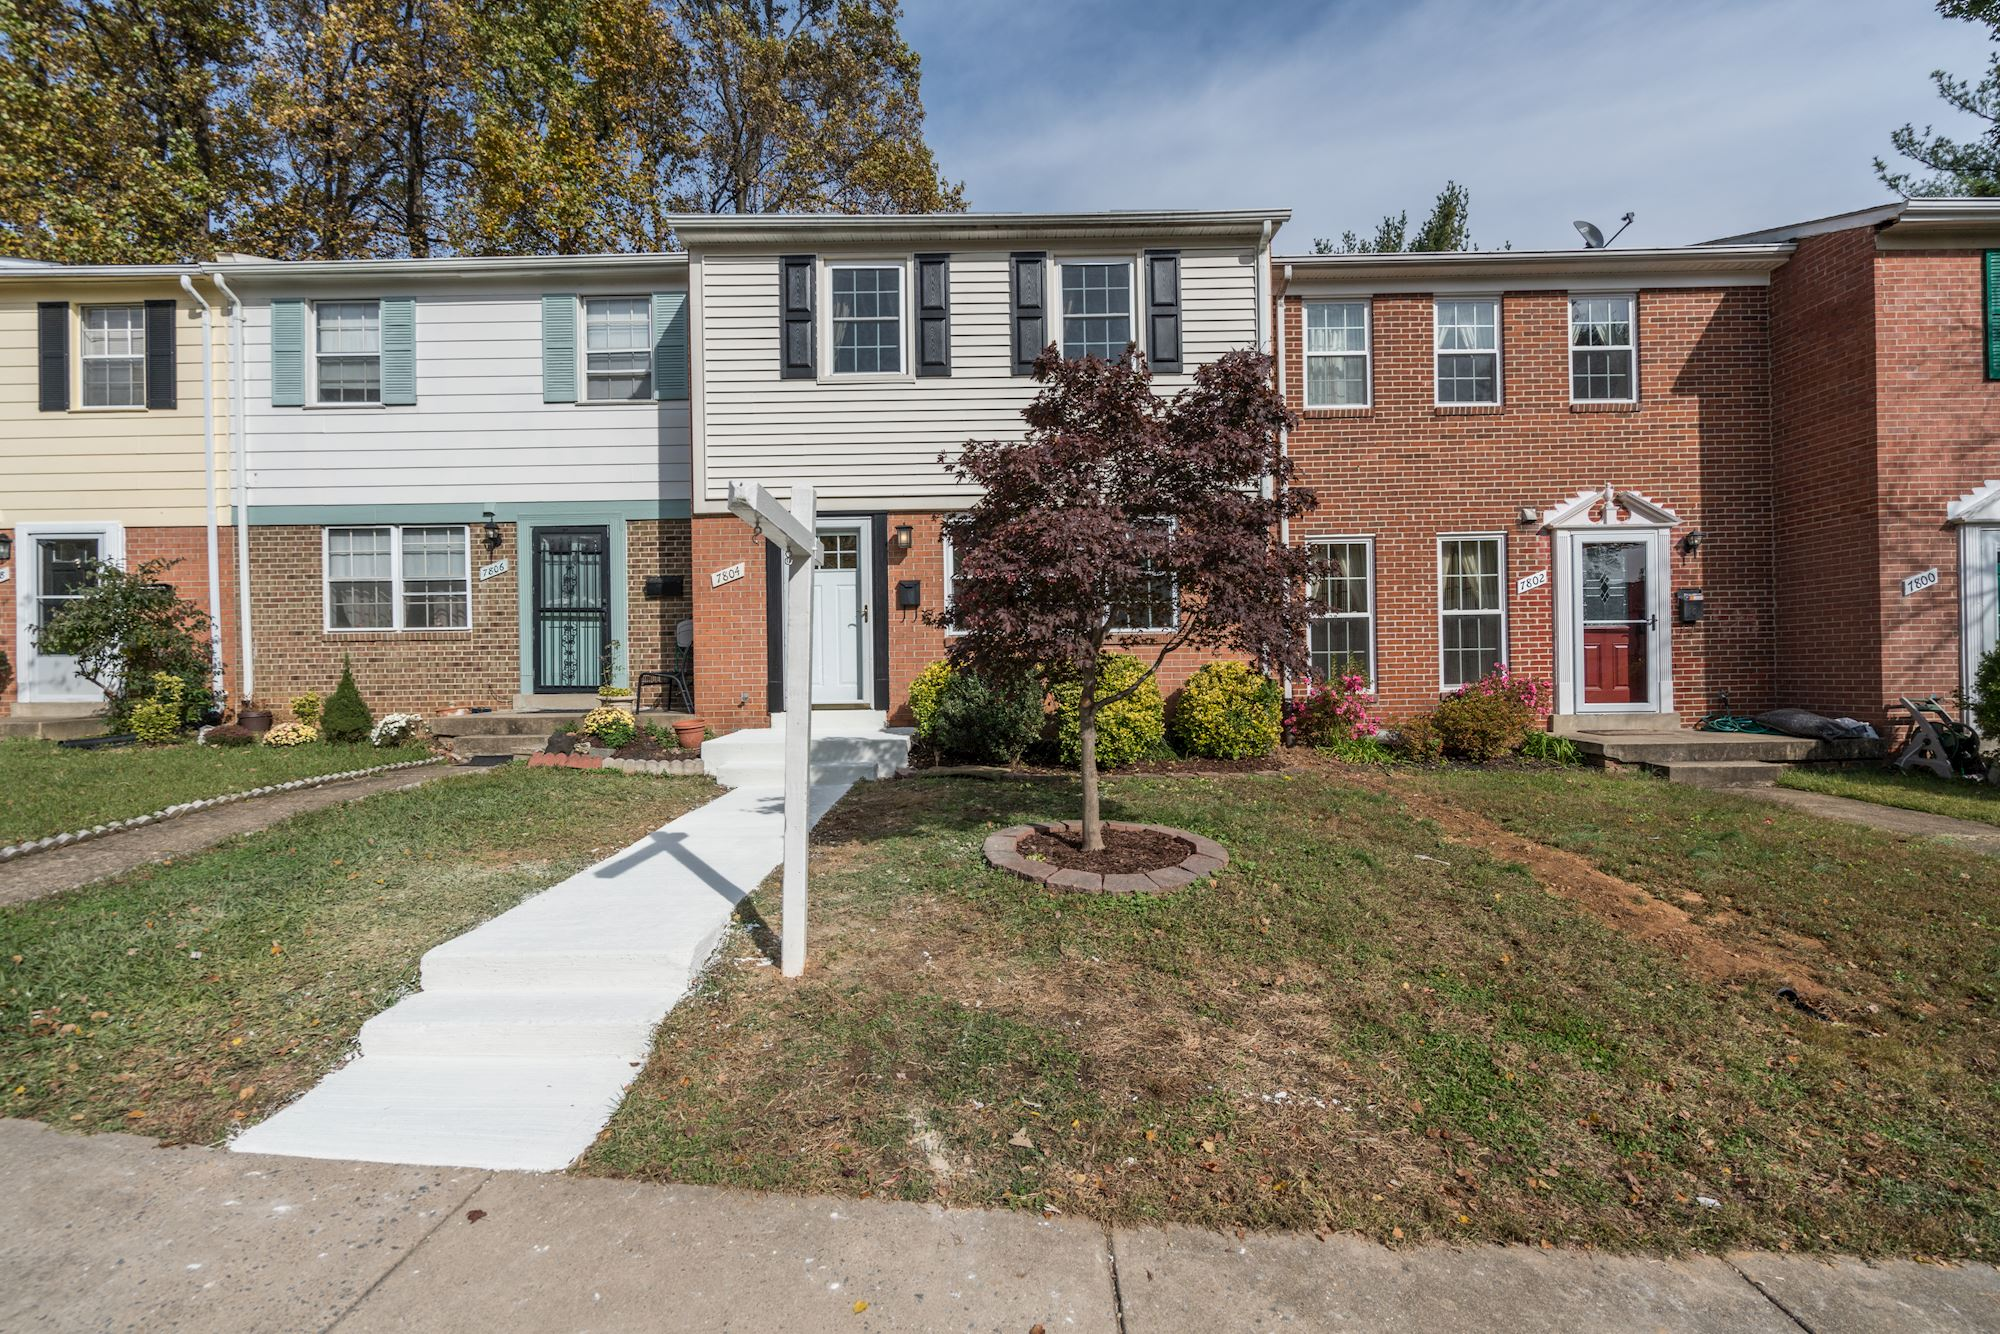 NEW LISTING: 3 BD Updated Townhome in Falls Church, VA